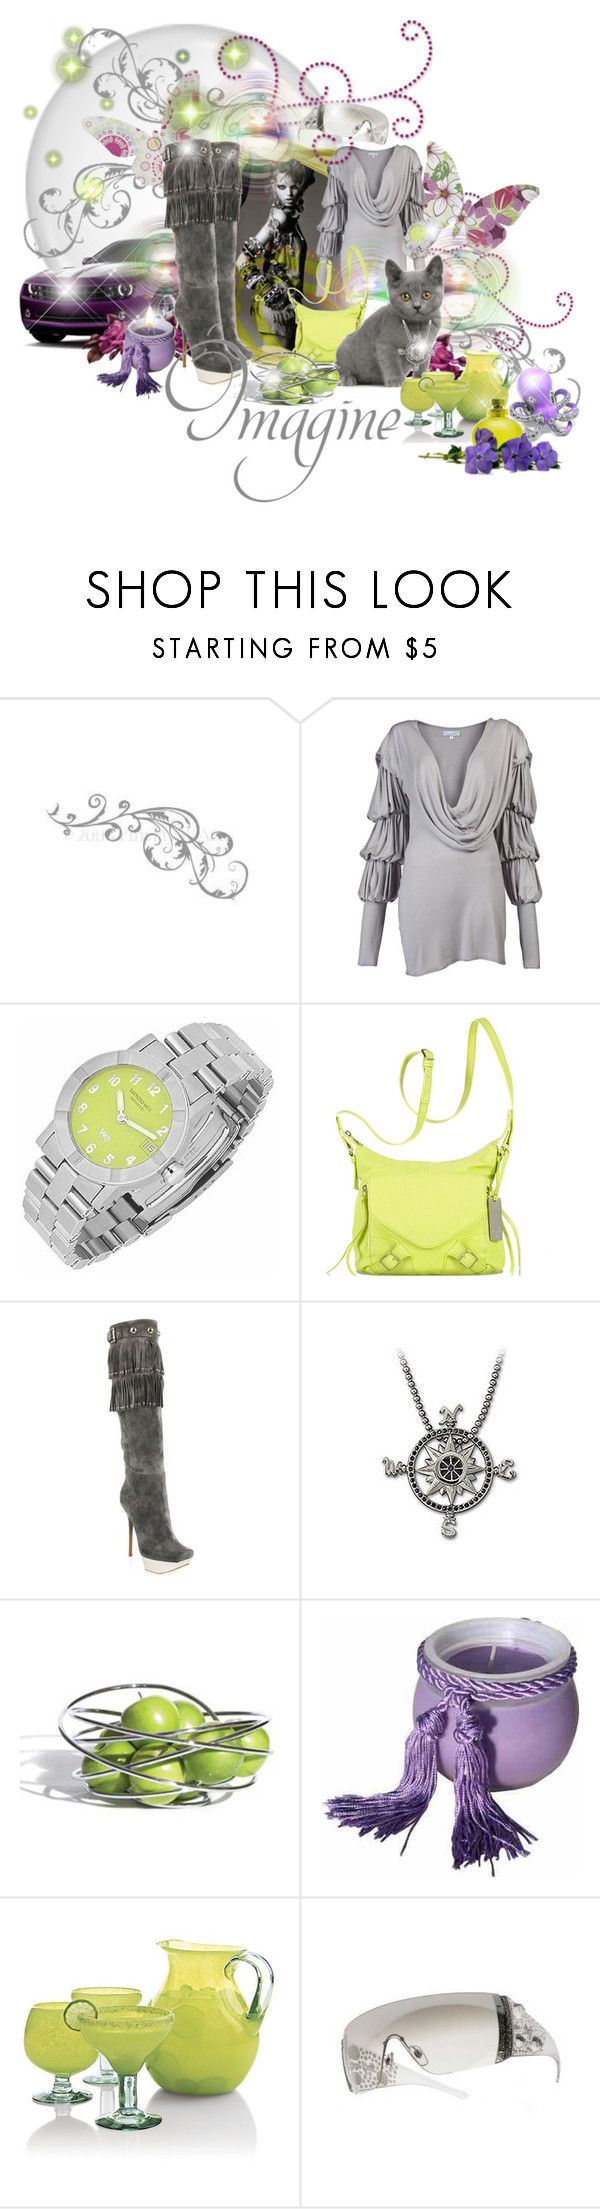 """""""Imagine"""" by aquabunny ❤ liked on Polyvore featuring WALL, Forum, JULIA CLANCEY, Raymond Weil, Botkier, Gianmarco Lorenzi, Swarovski, Black+Blum, Sonoma Lavender and Crate and Barrel"""